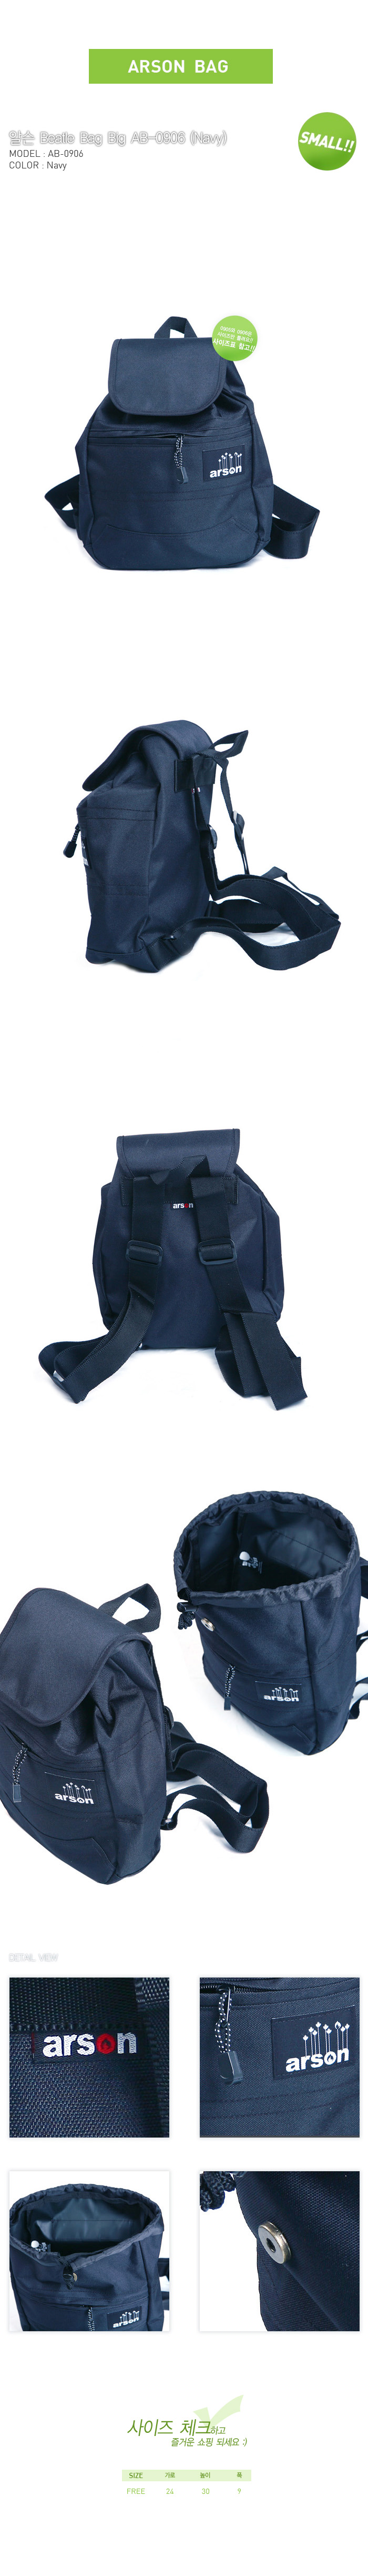 [ ARSON ] AB-0906 (Navy)/Backpack School Bag